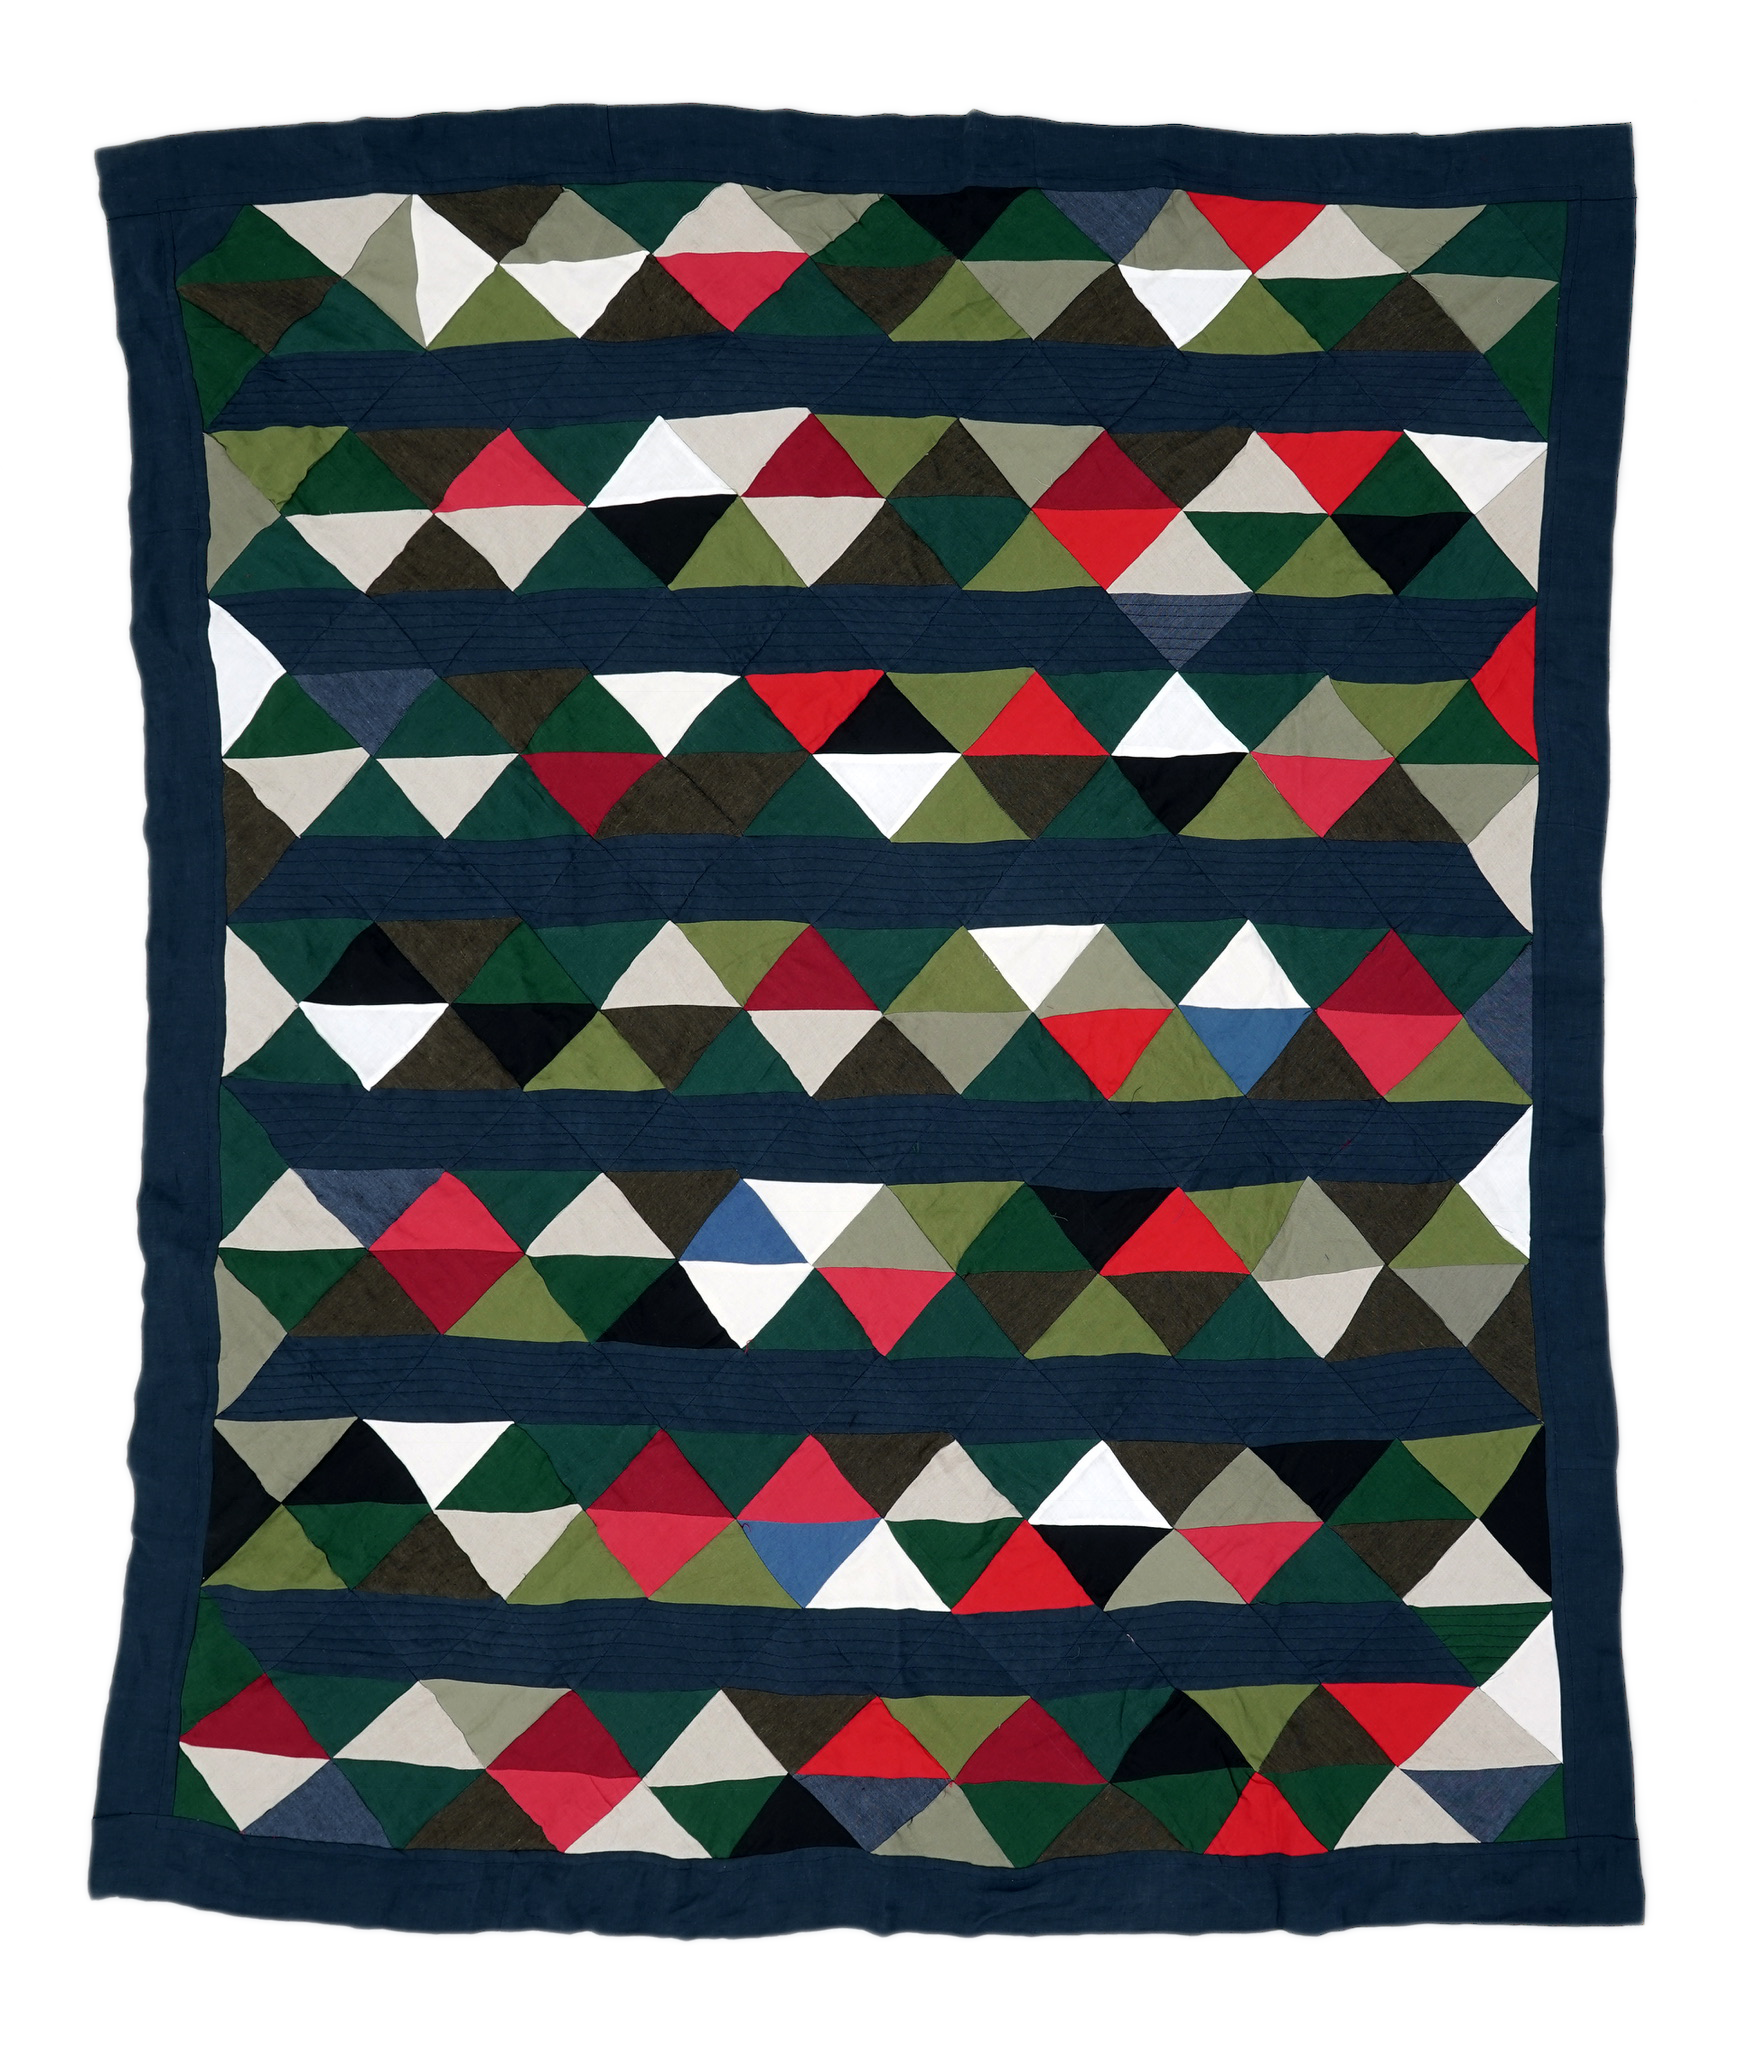 Quilt 9 front w.png